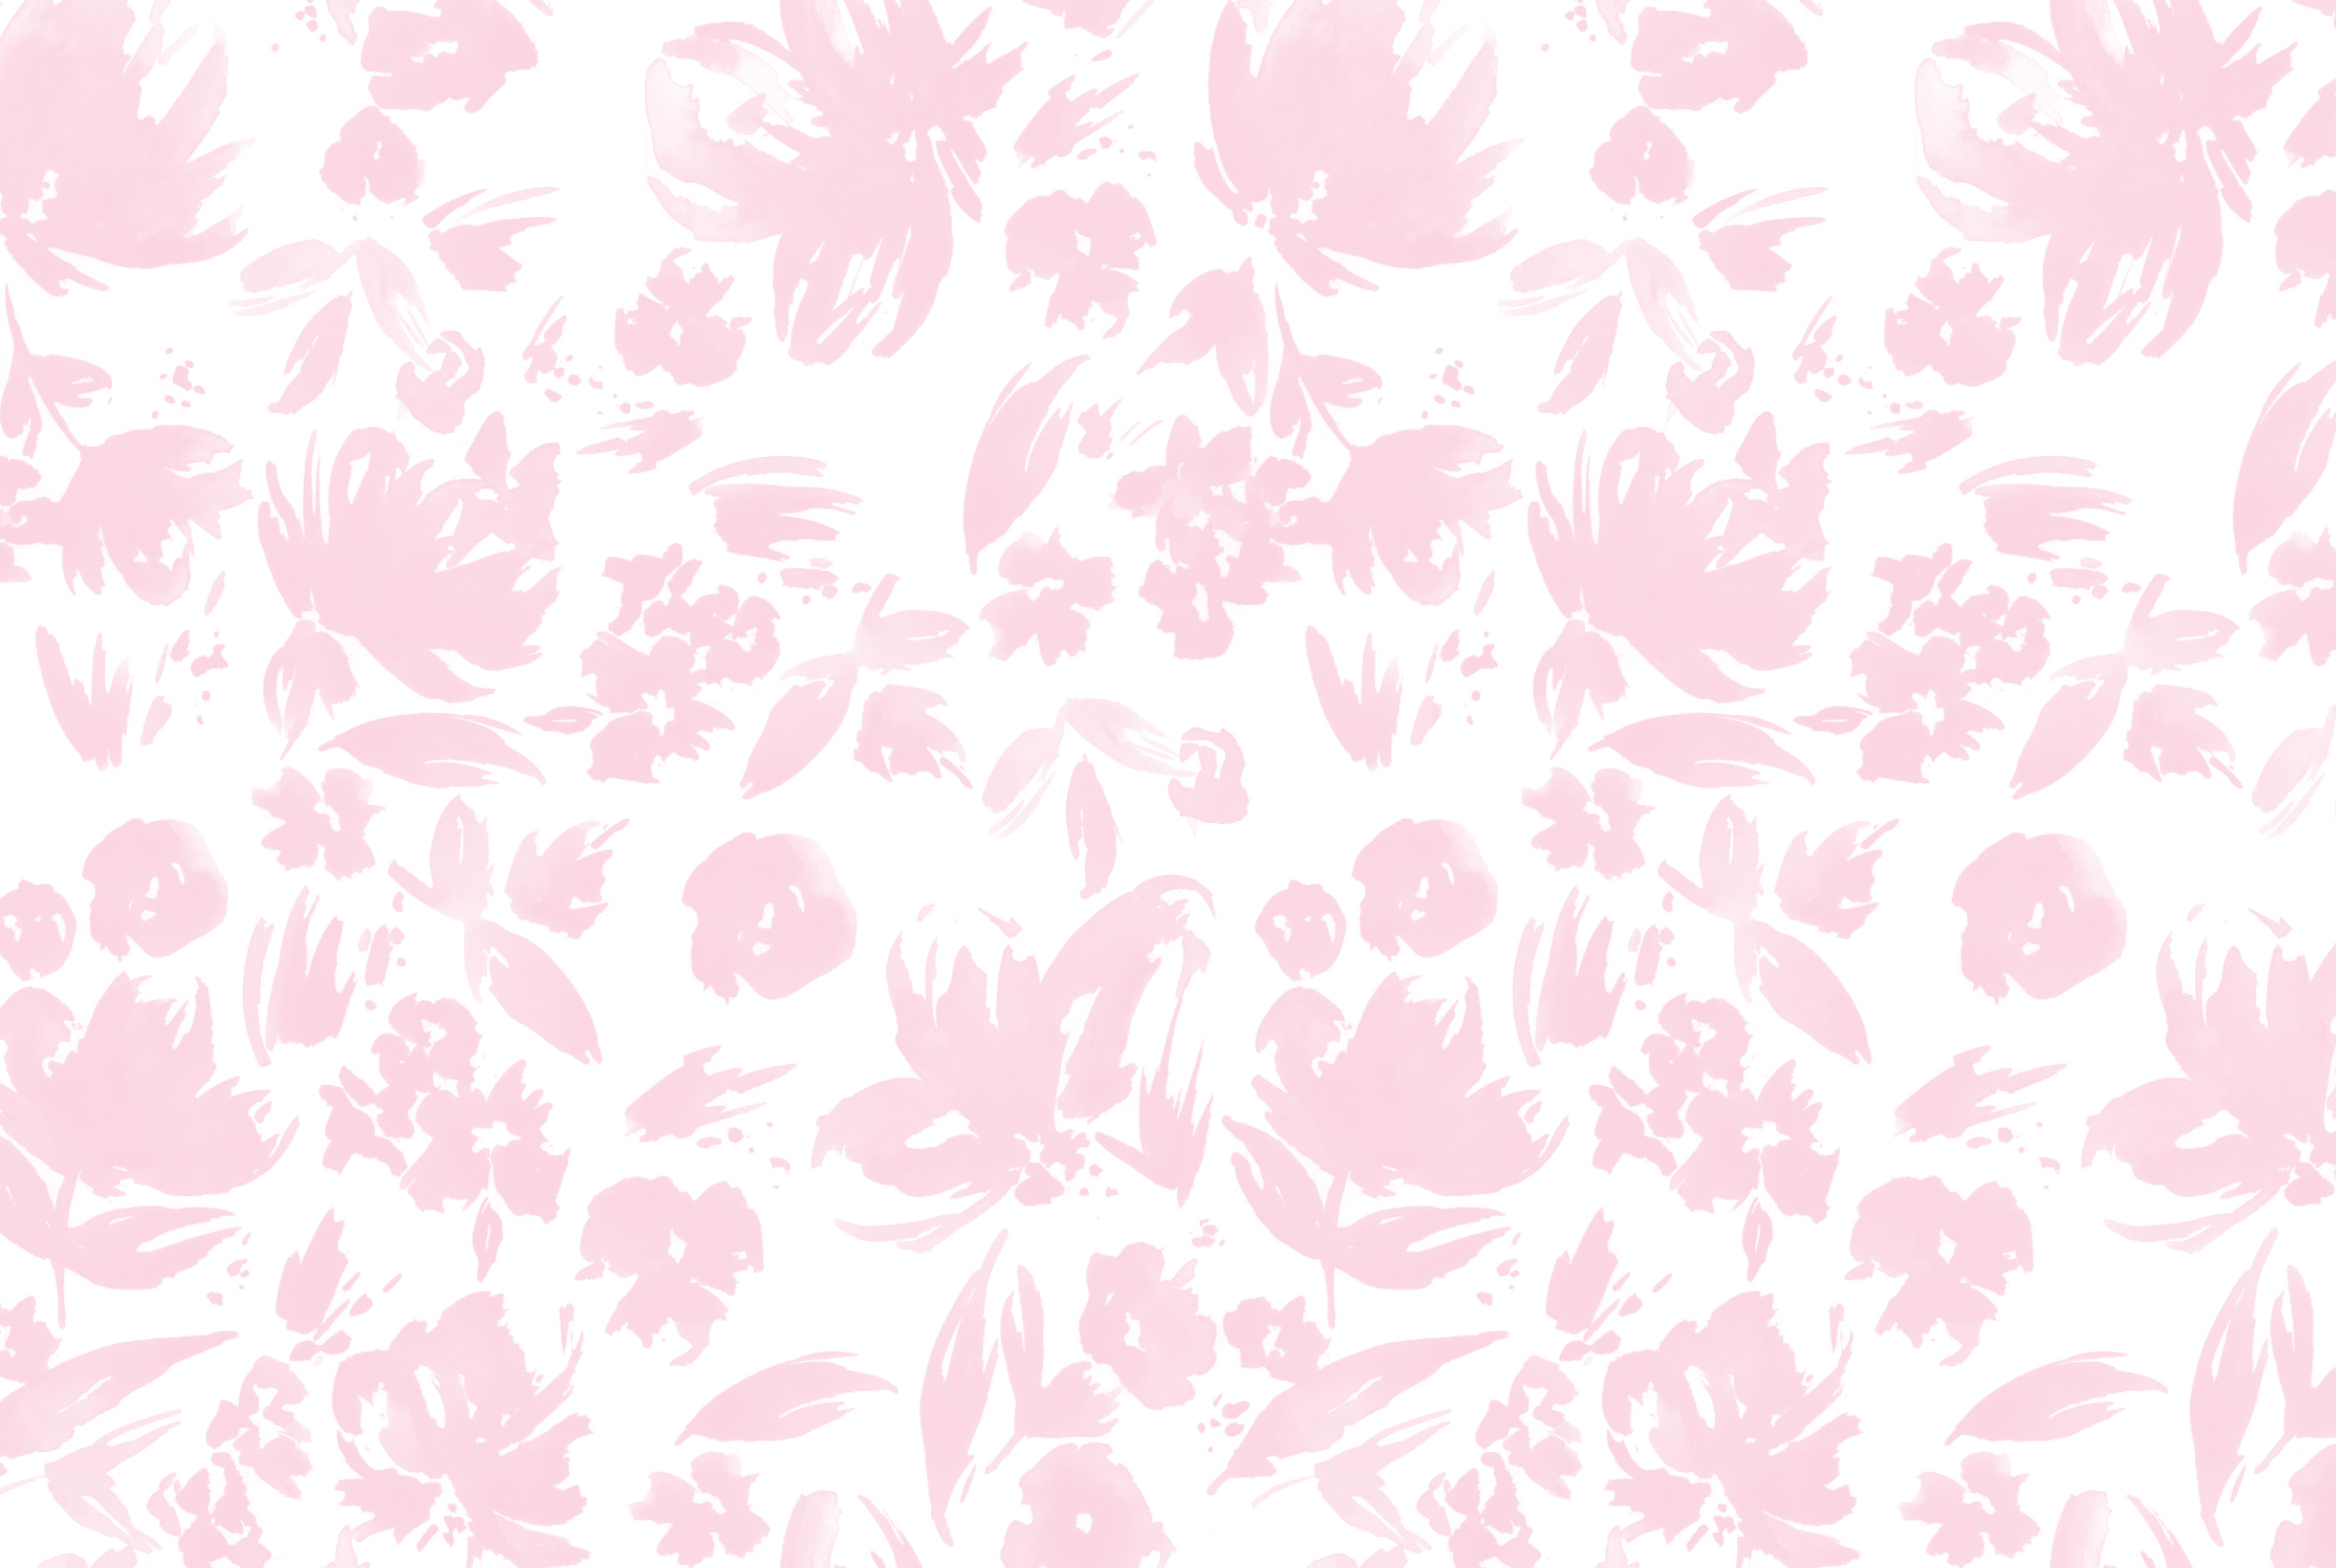 Simple Wallpaper Home Screen Bright - 997176-new-pink-desktop-backgrounds-2800x1880-lockscreen  Perfect Image Reference_404339.jpg